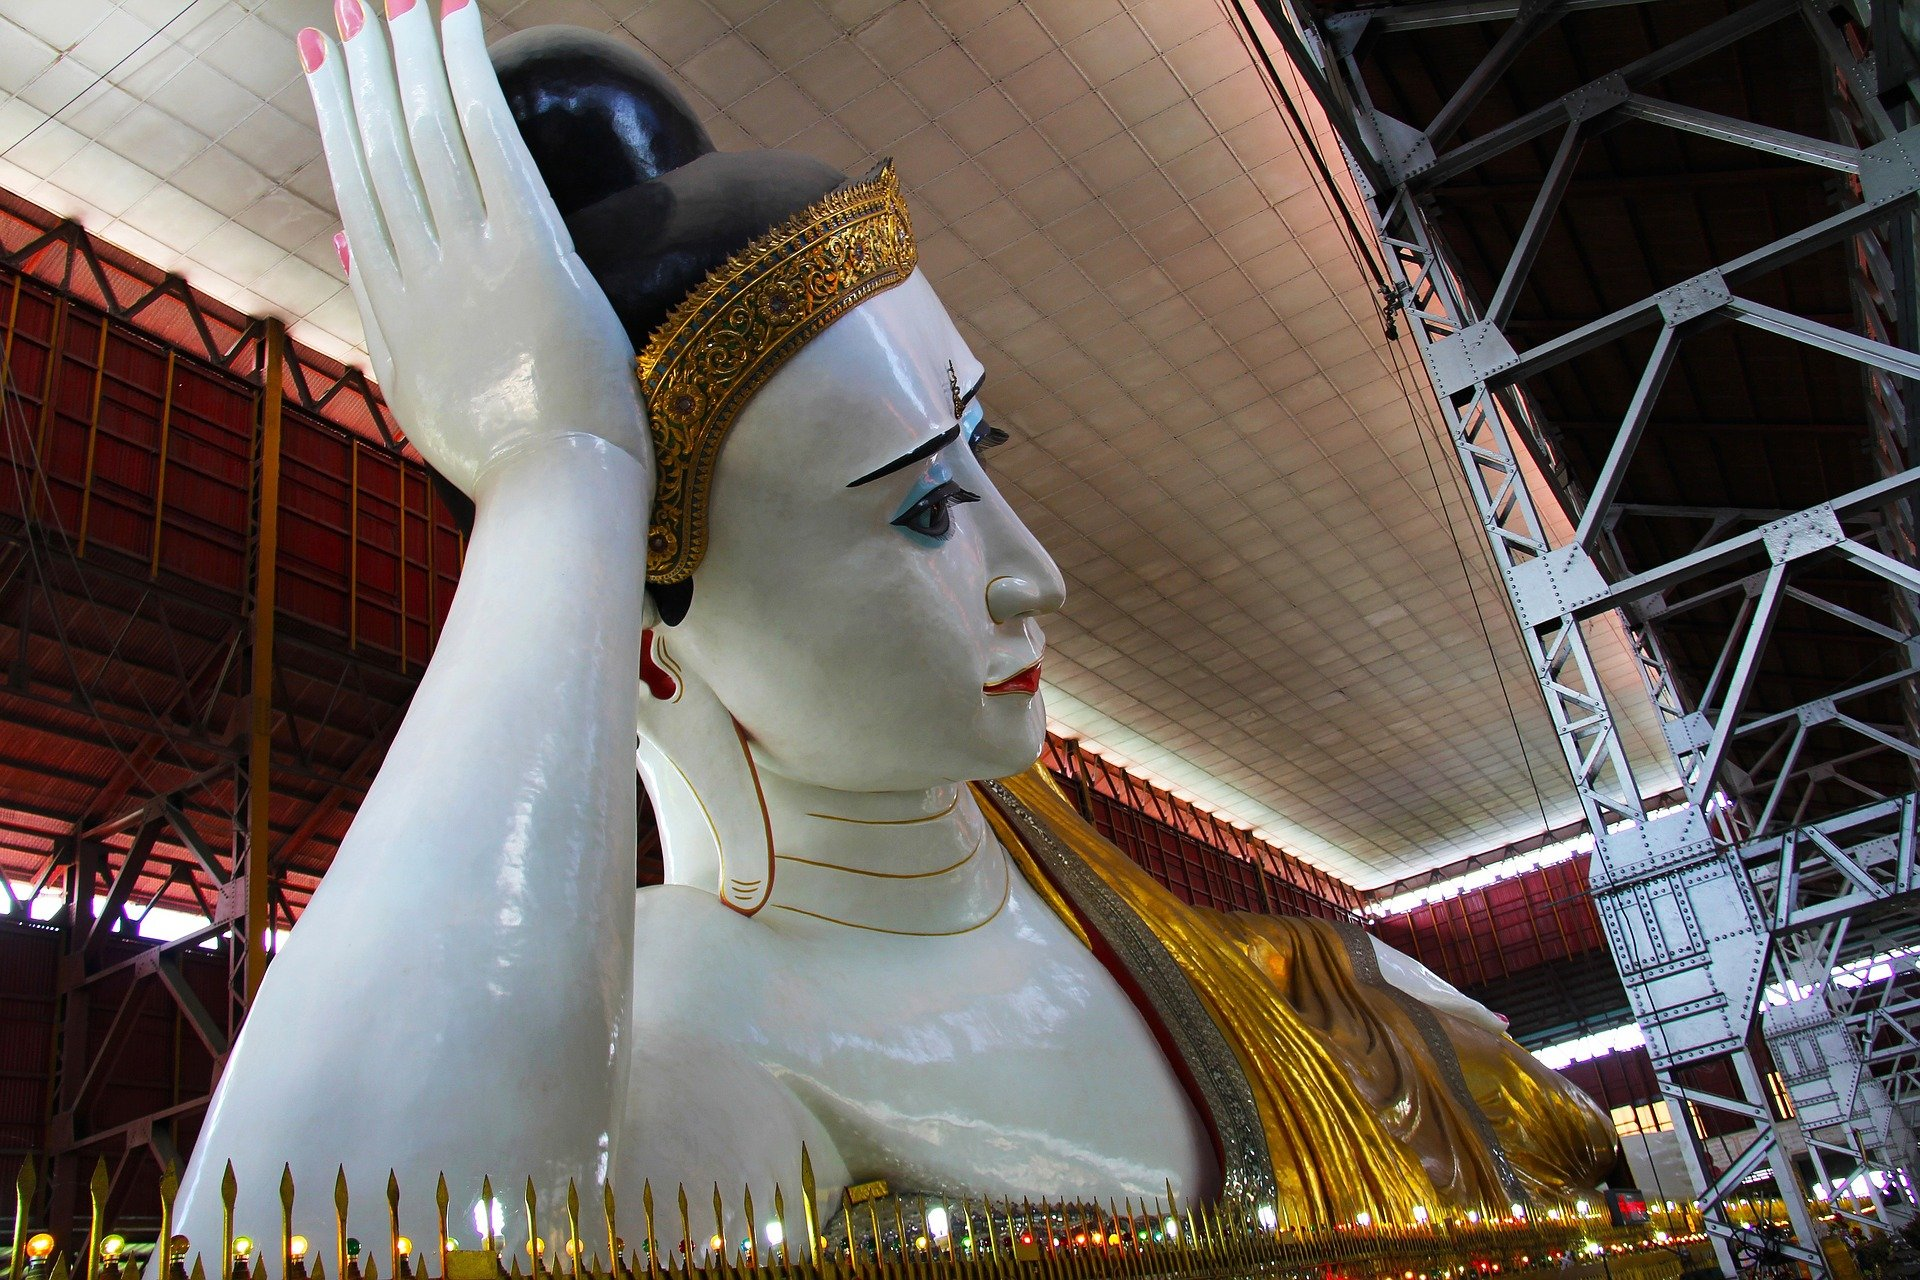 Head of the Chauk Htat Gyi Reclining Buddha